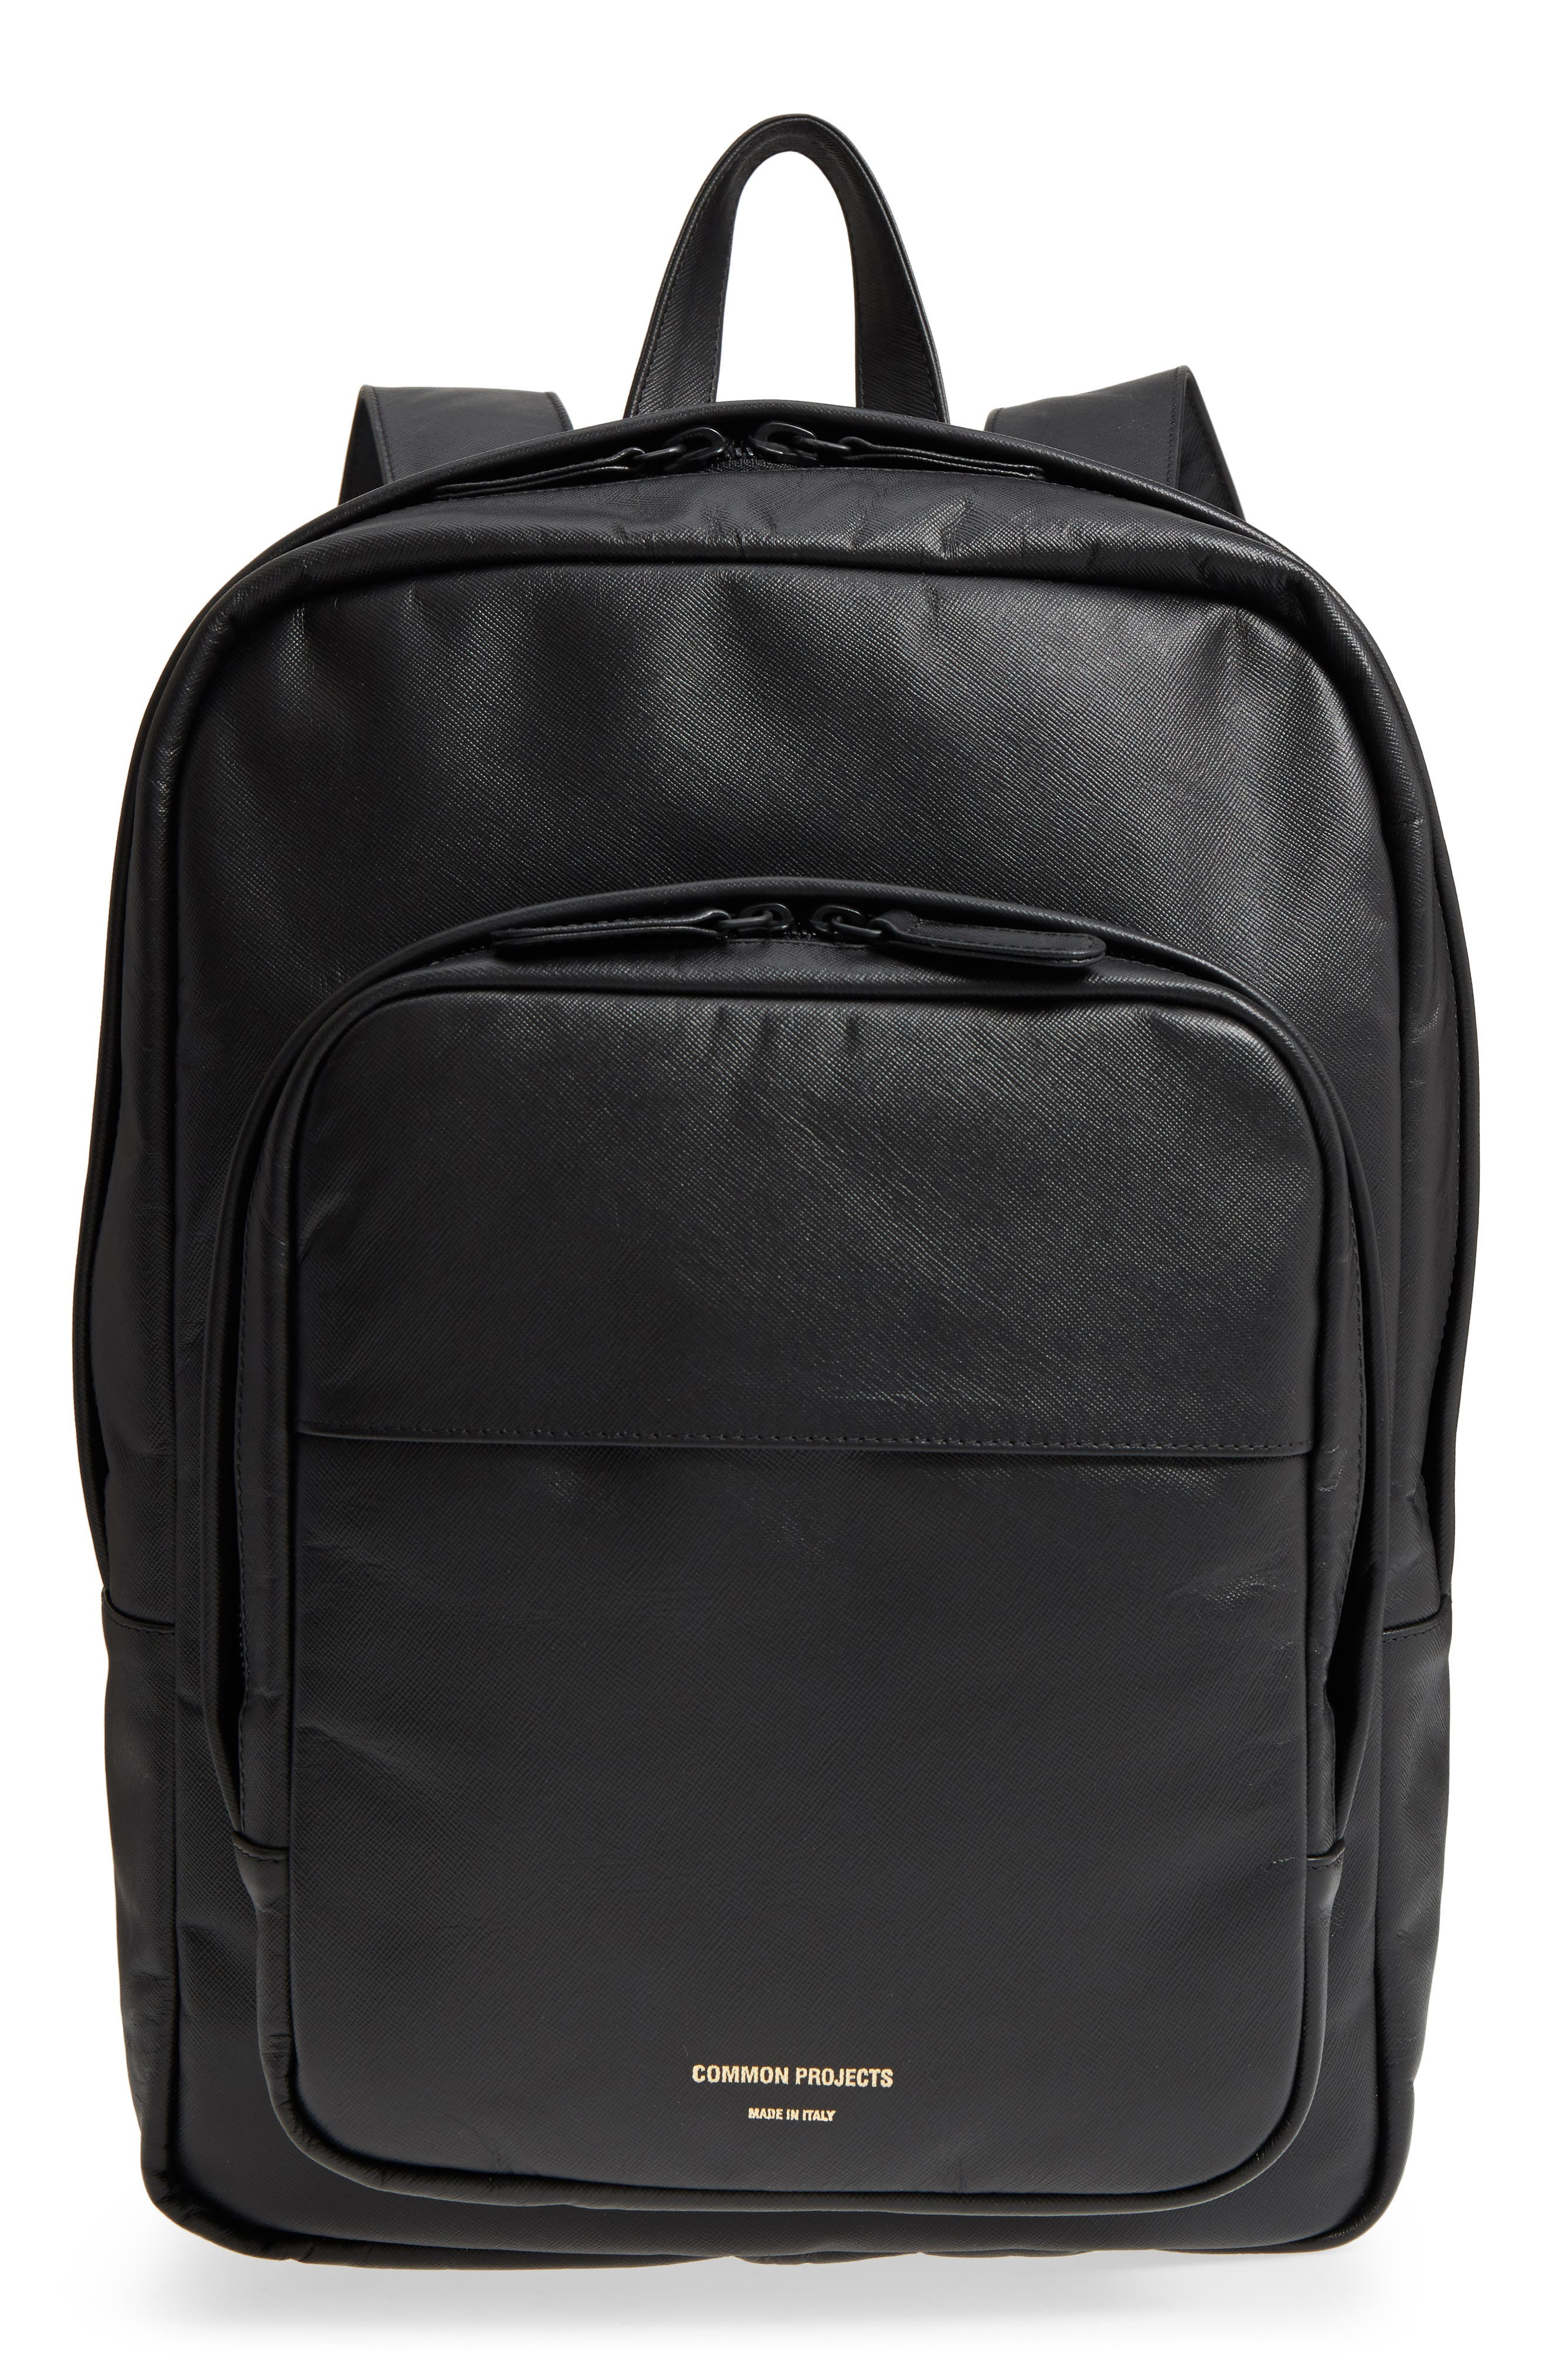 Saffiano Leather Backpack,                         Main,                         color, 001